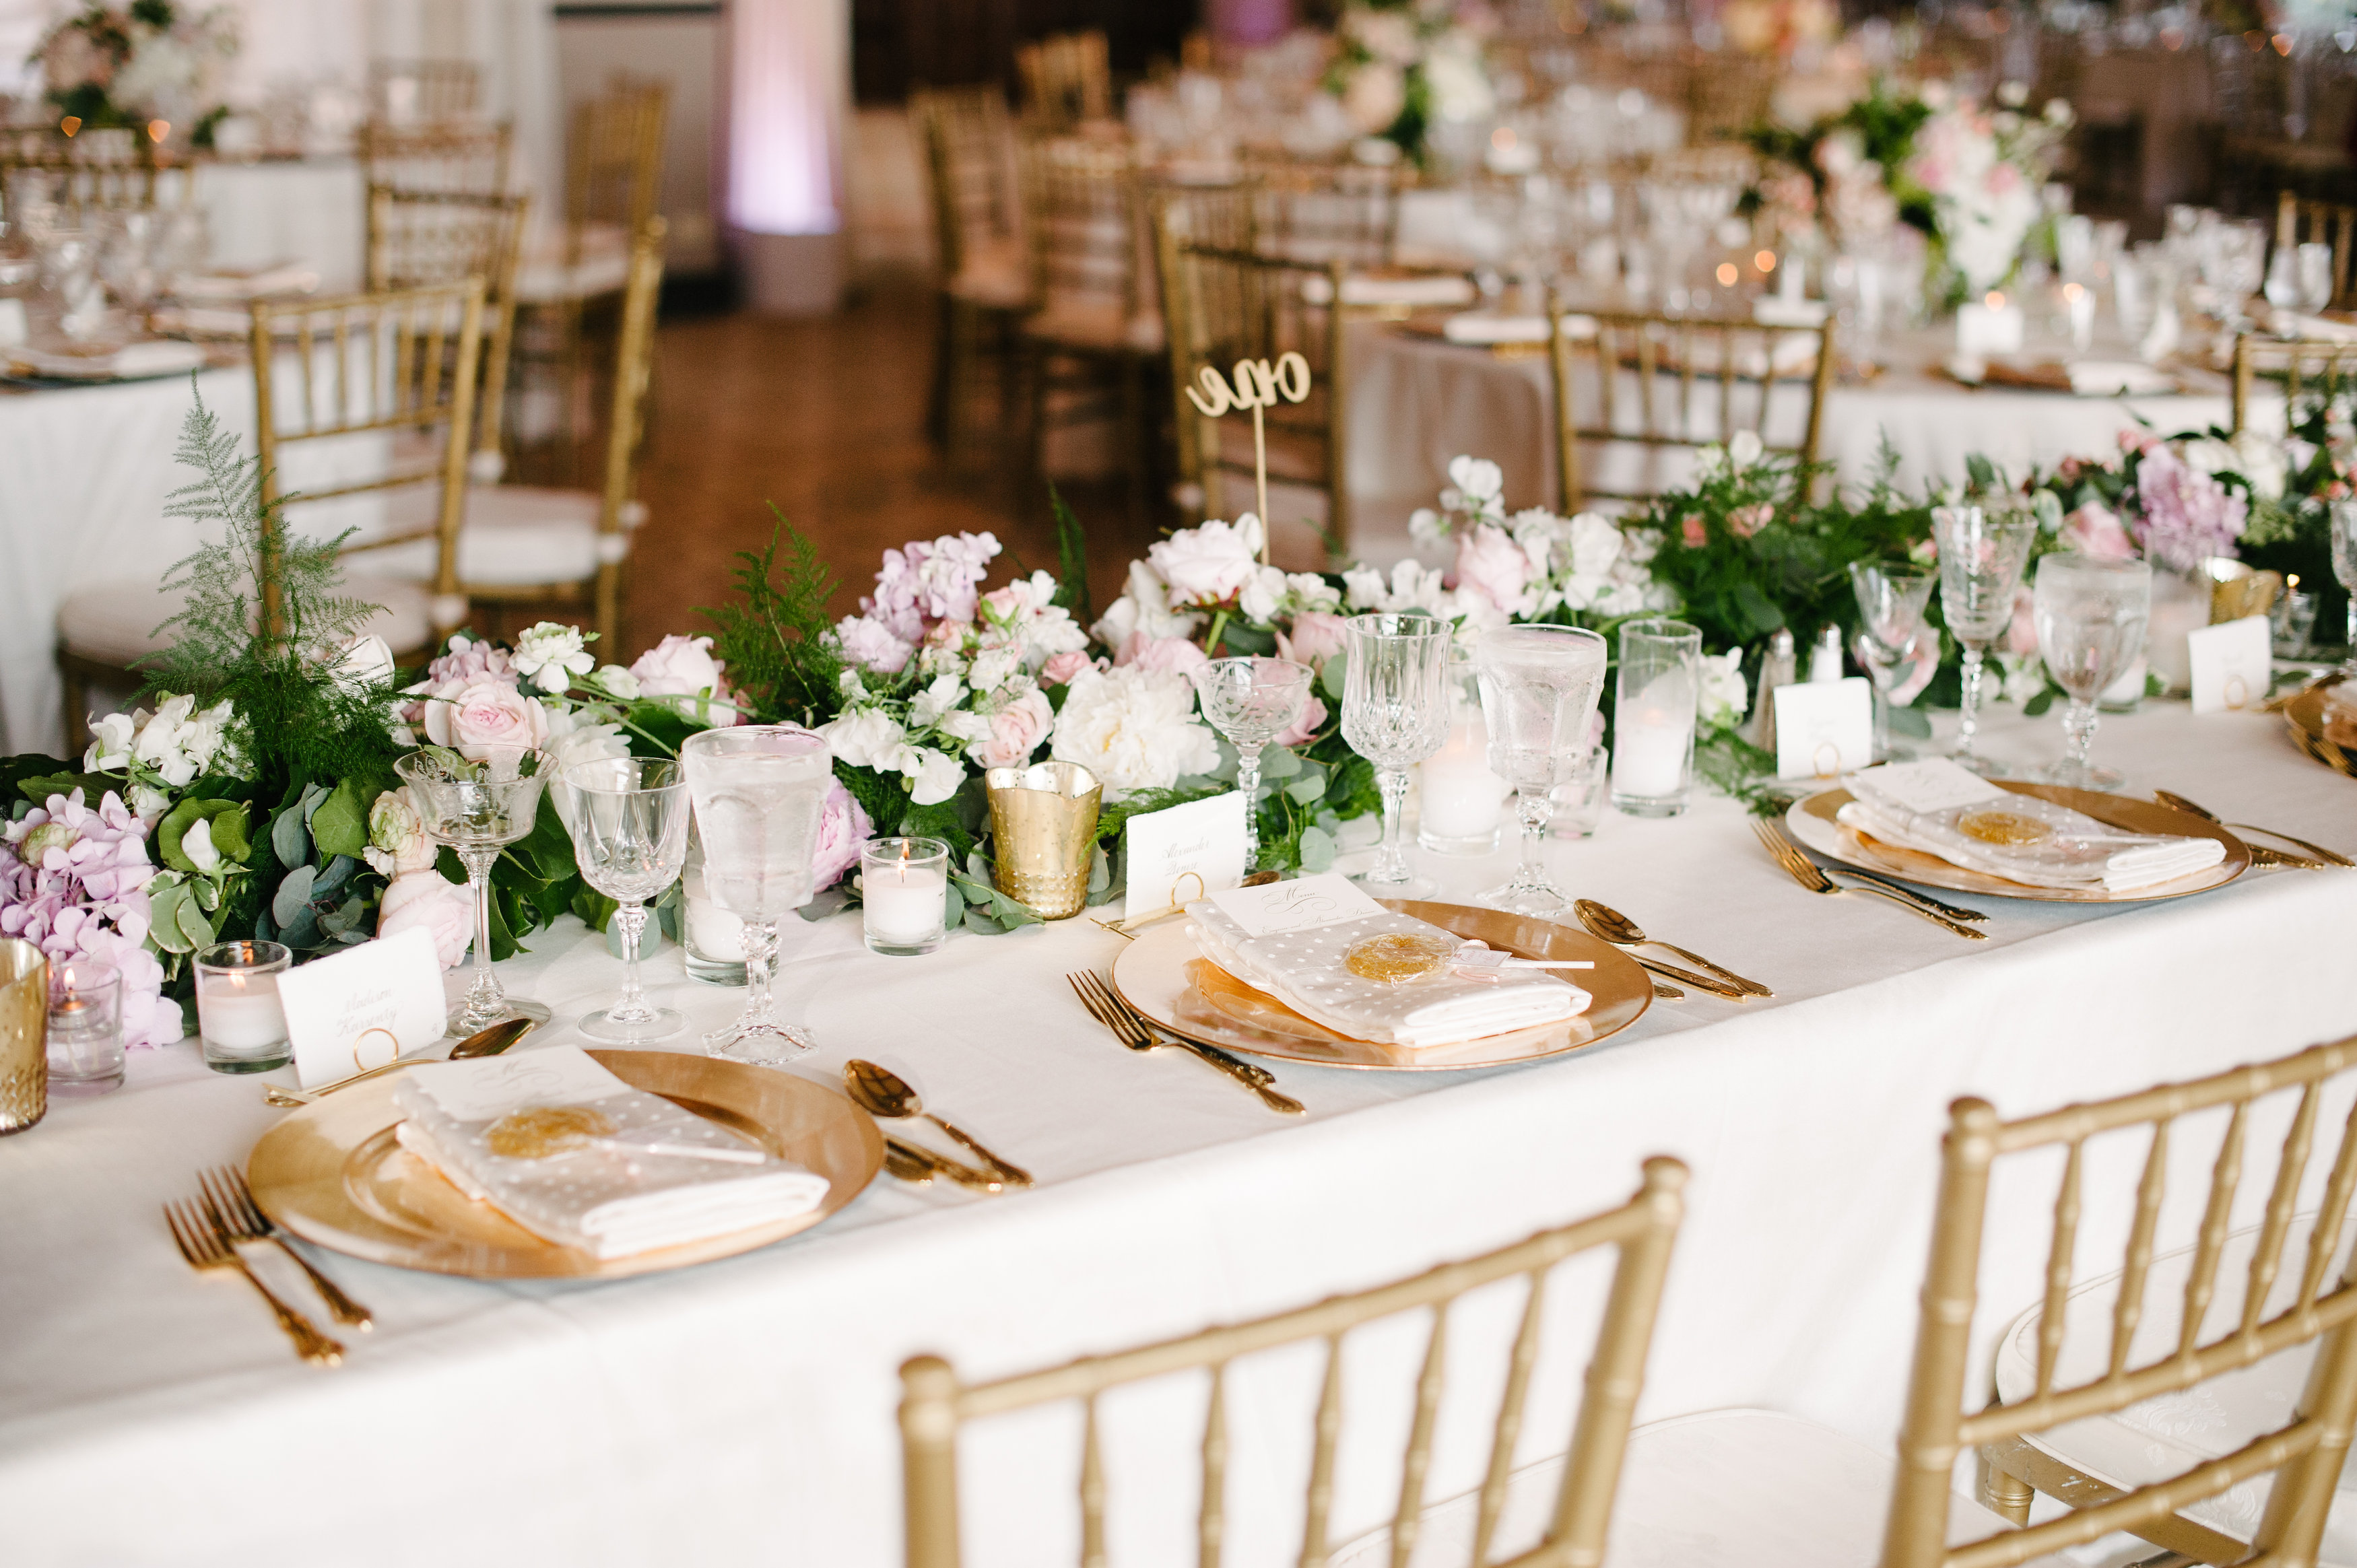 11 Beautiful Floral Table Runners For Your Wedding Reception Tables